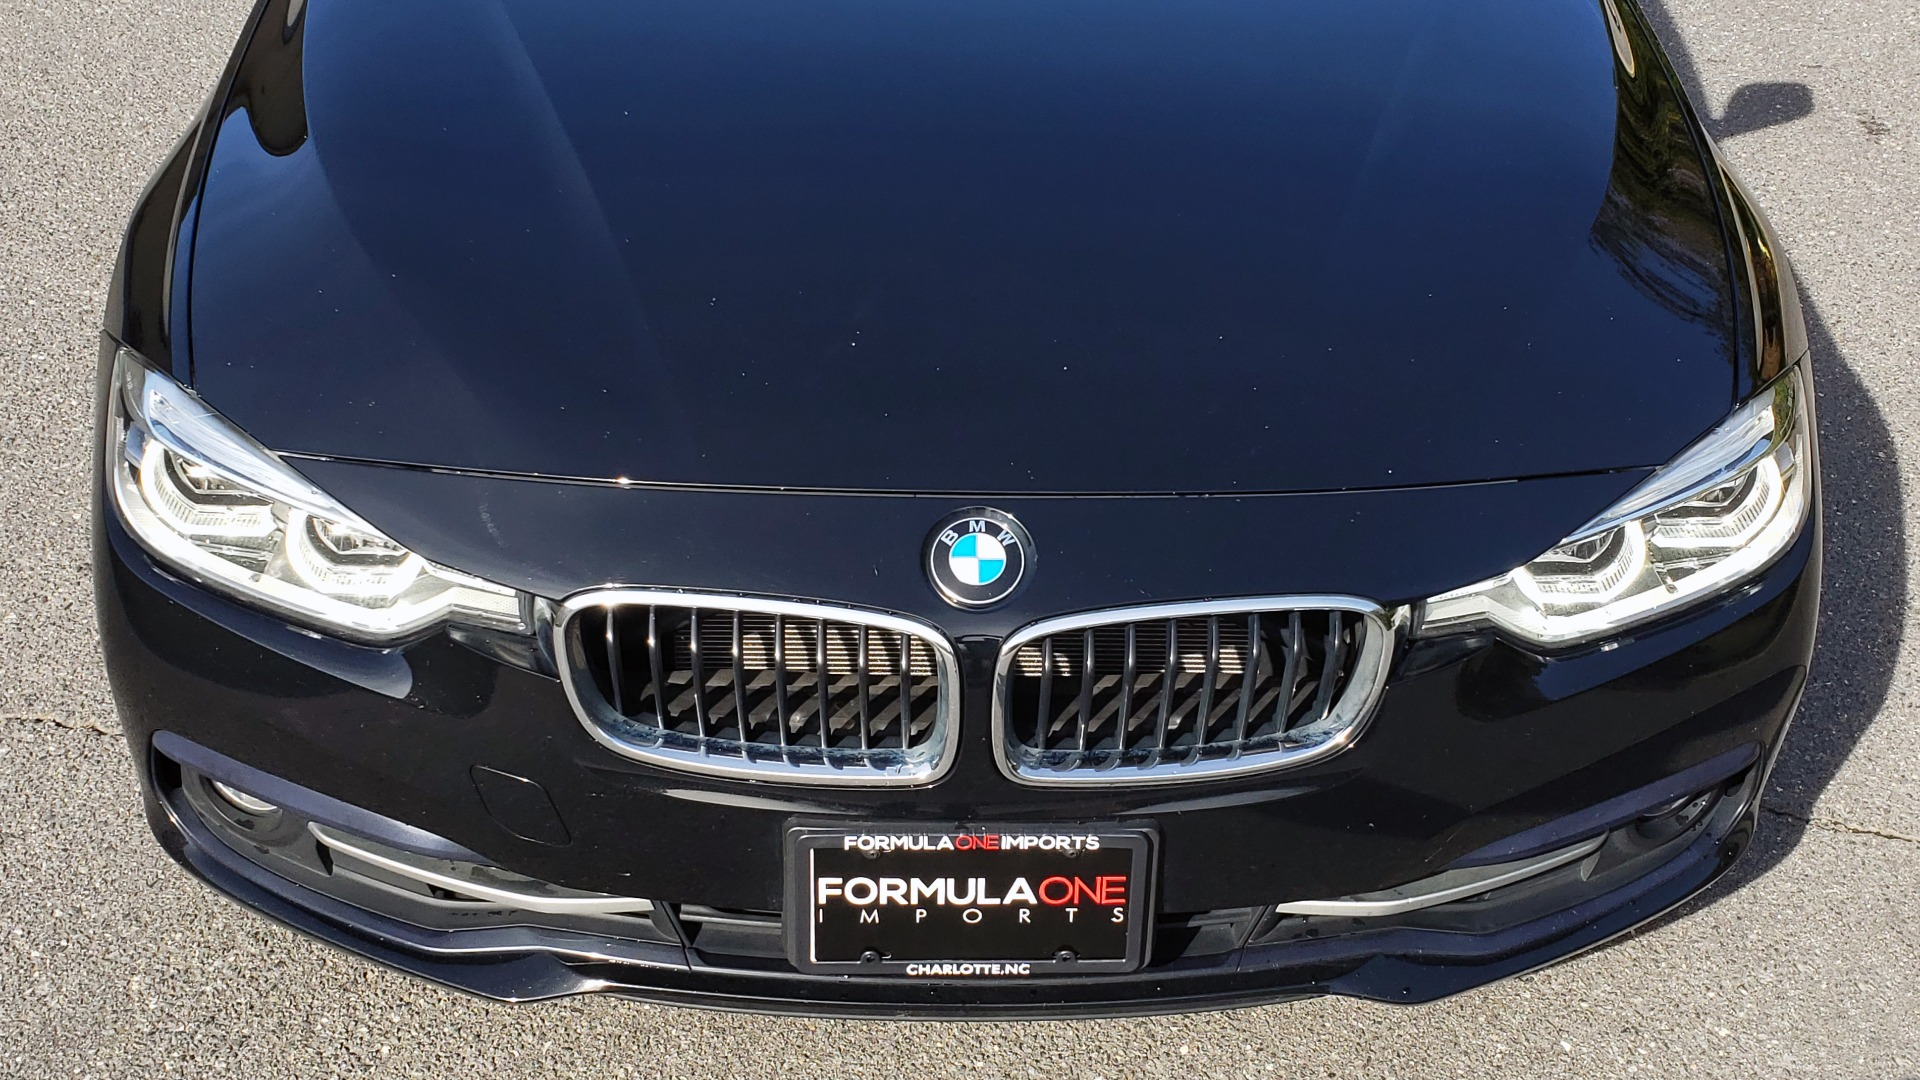 Used 2018 BMW 3 SERIES 330I XDRIVE / CONV PKG / NAV / HTD STS / SUNROOF / REARVIEW for sale Sold at Formula Imports in Charlotte NC 28227 19